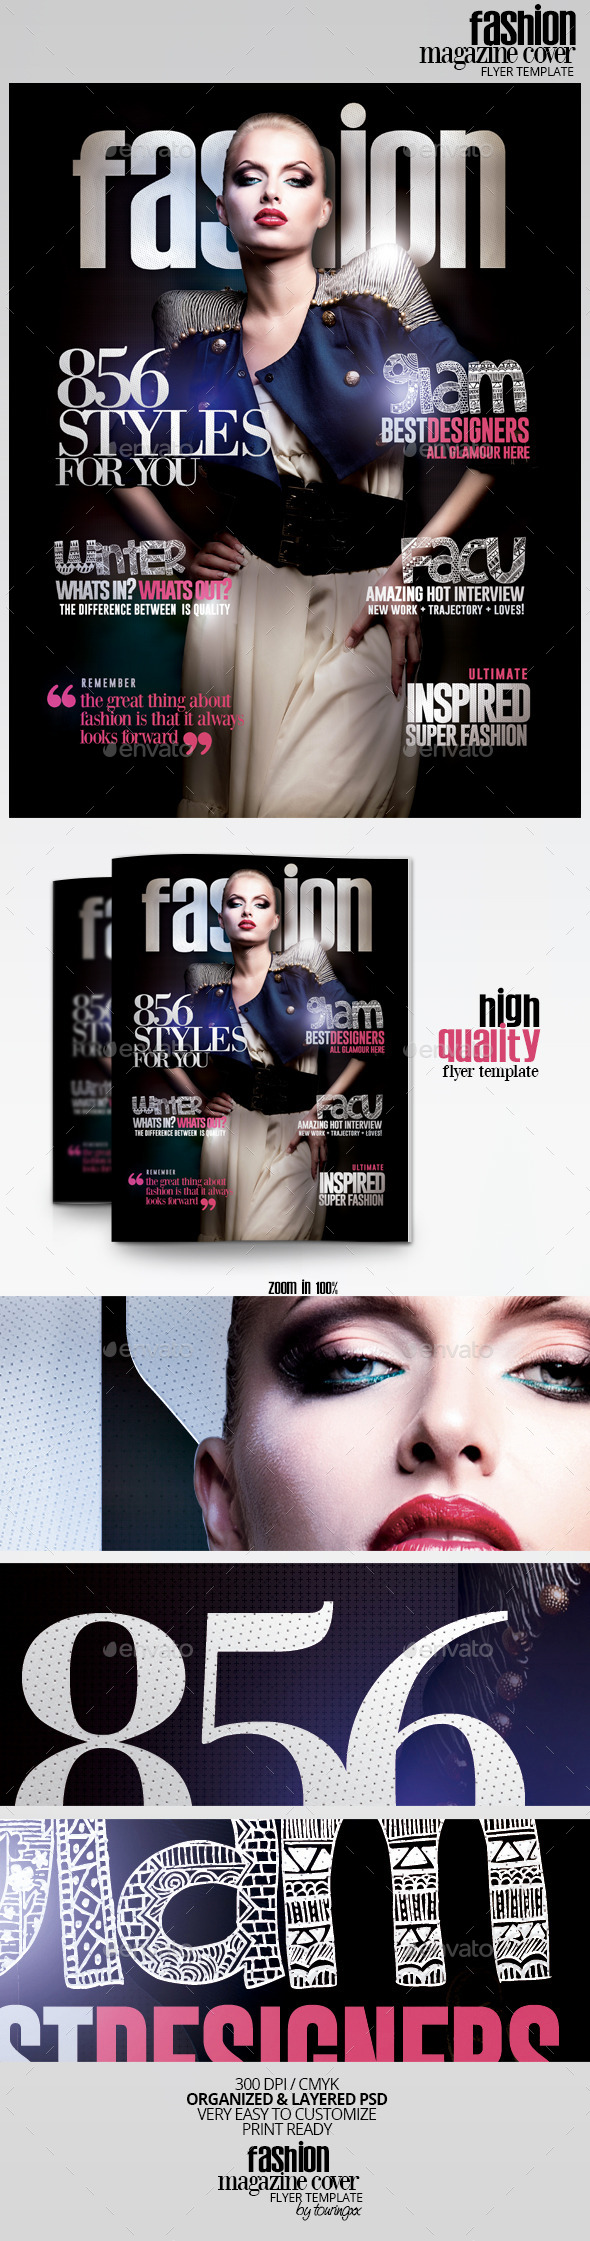 Fashion Magazine Cover Flyer Template - Flyers Print Templates